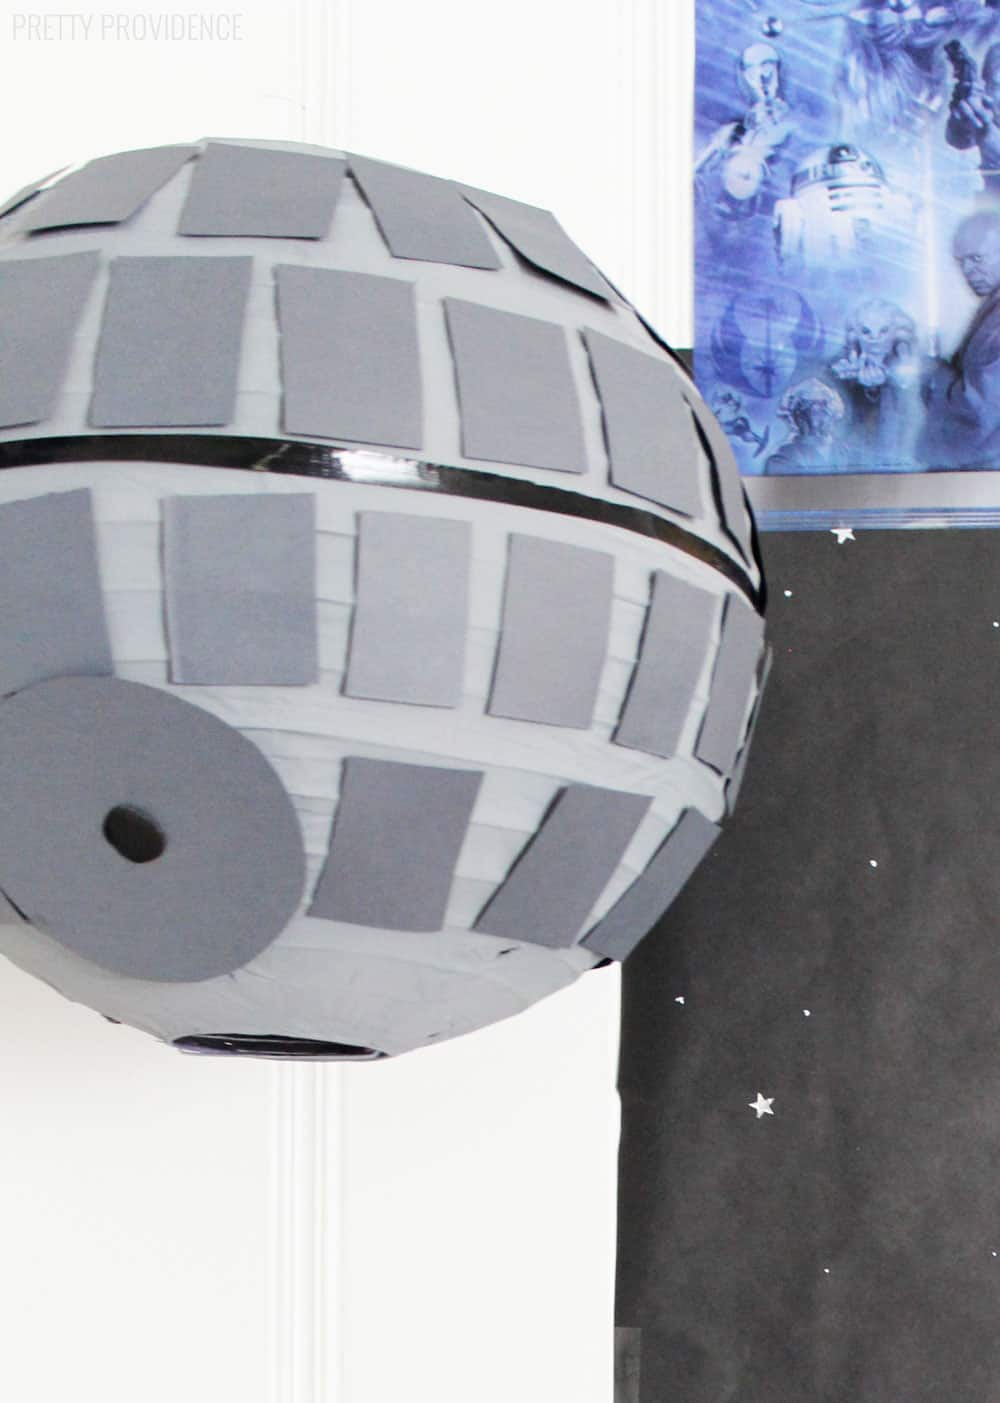 Star Wars Party Decorations - Death Star